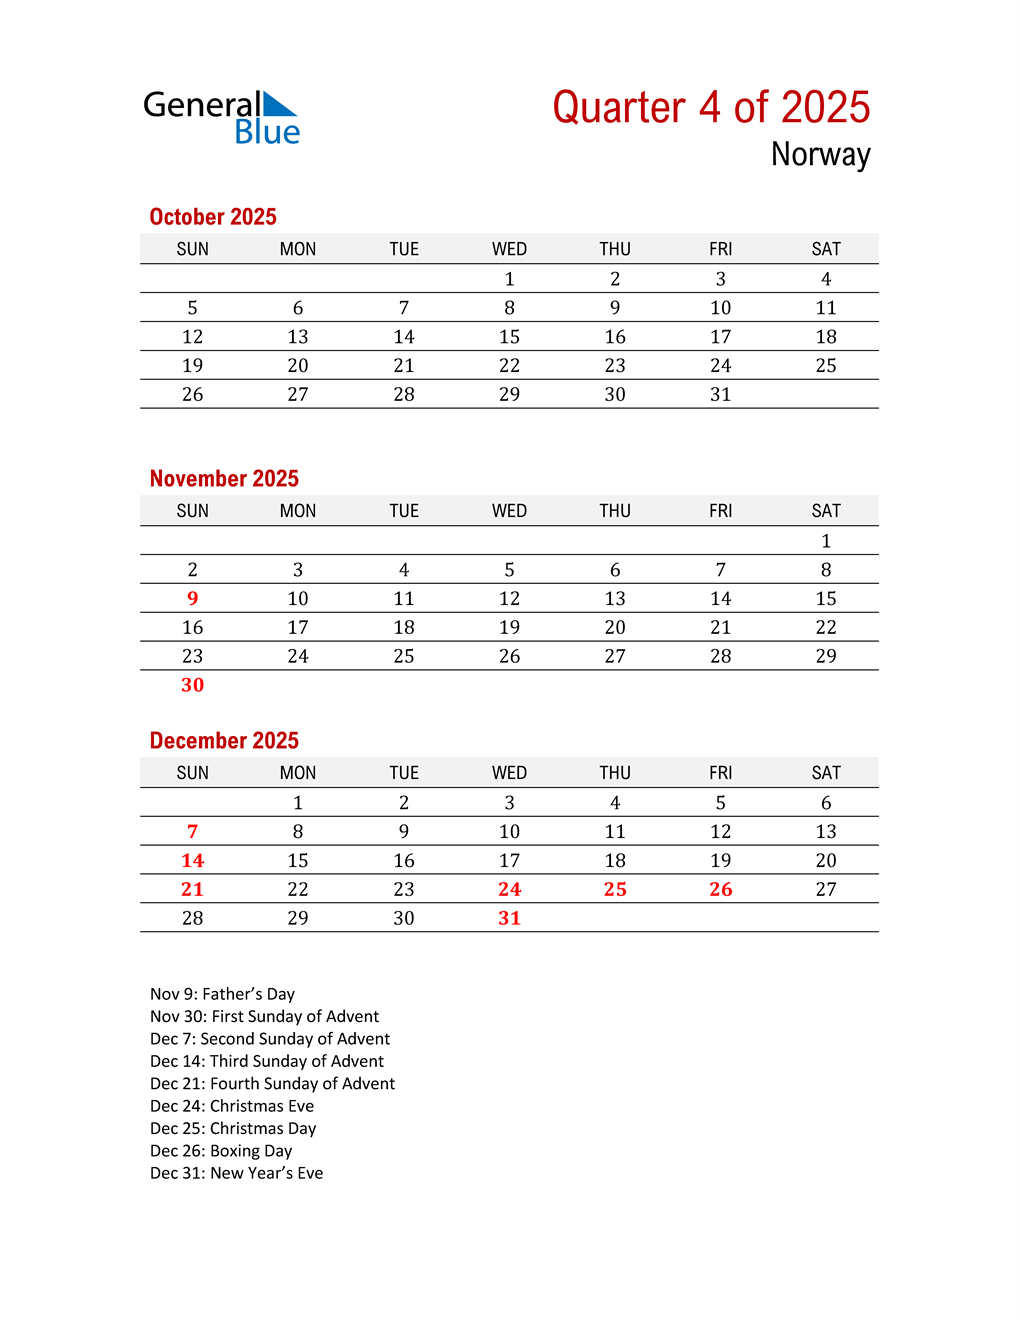 Printable Three Month Calendar for Norway